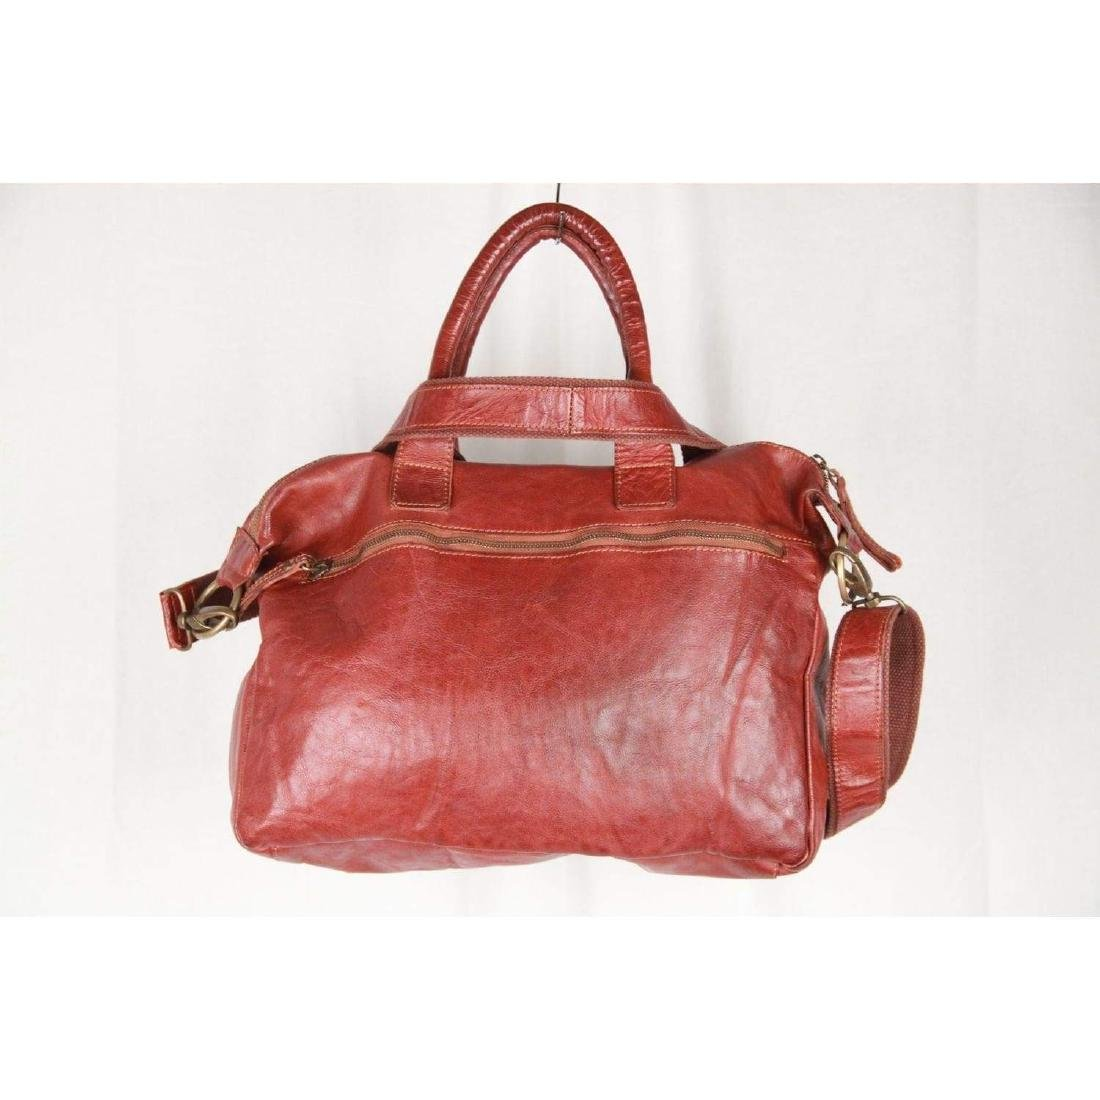 COWBOYSBAG Brown Leather THE BAG Satchel with WOVEN - 6